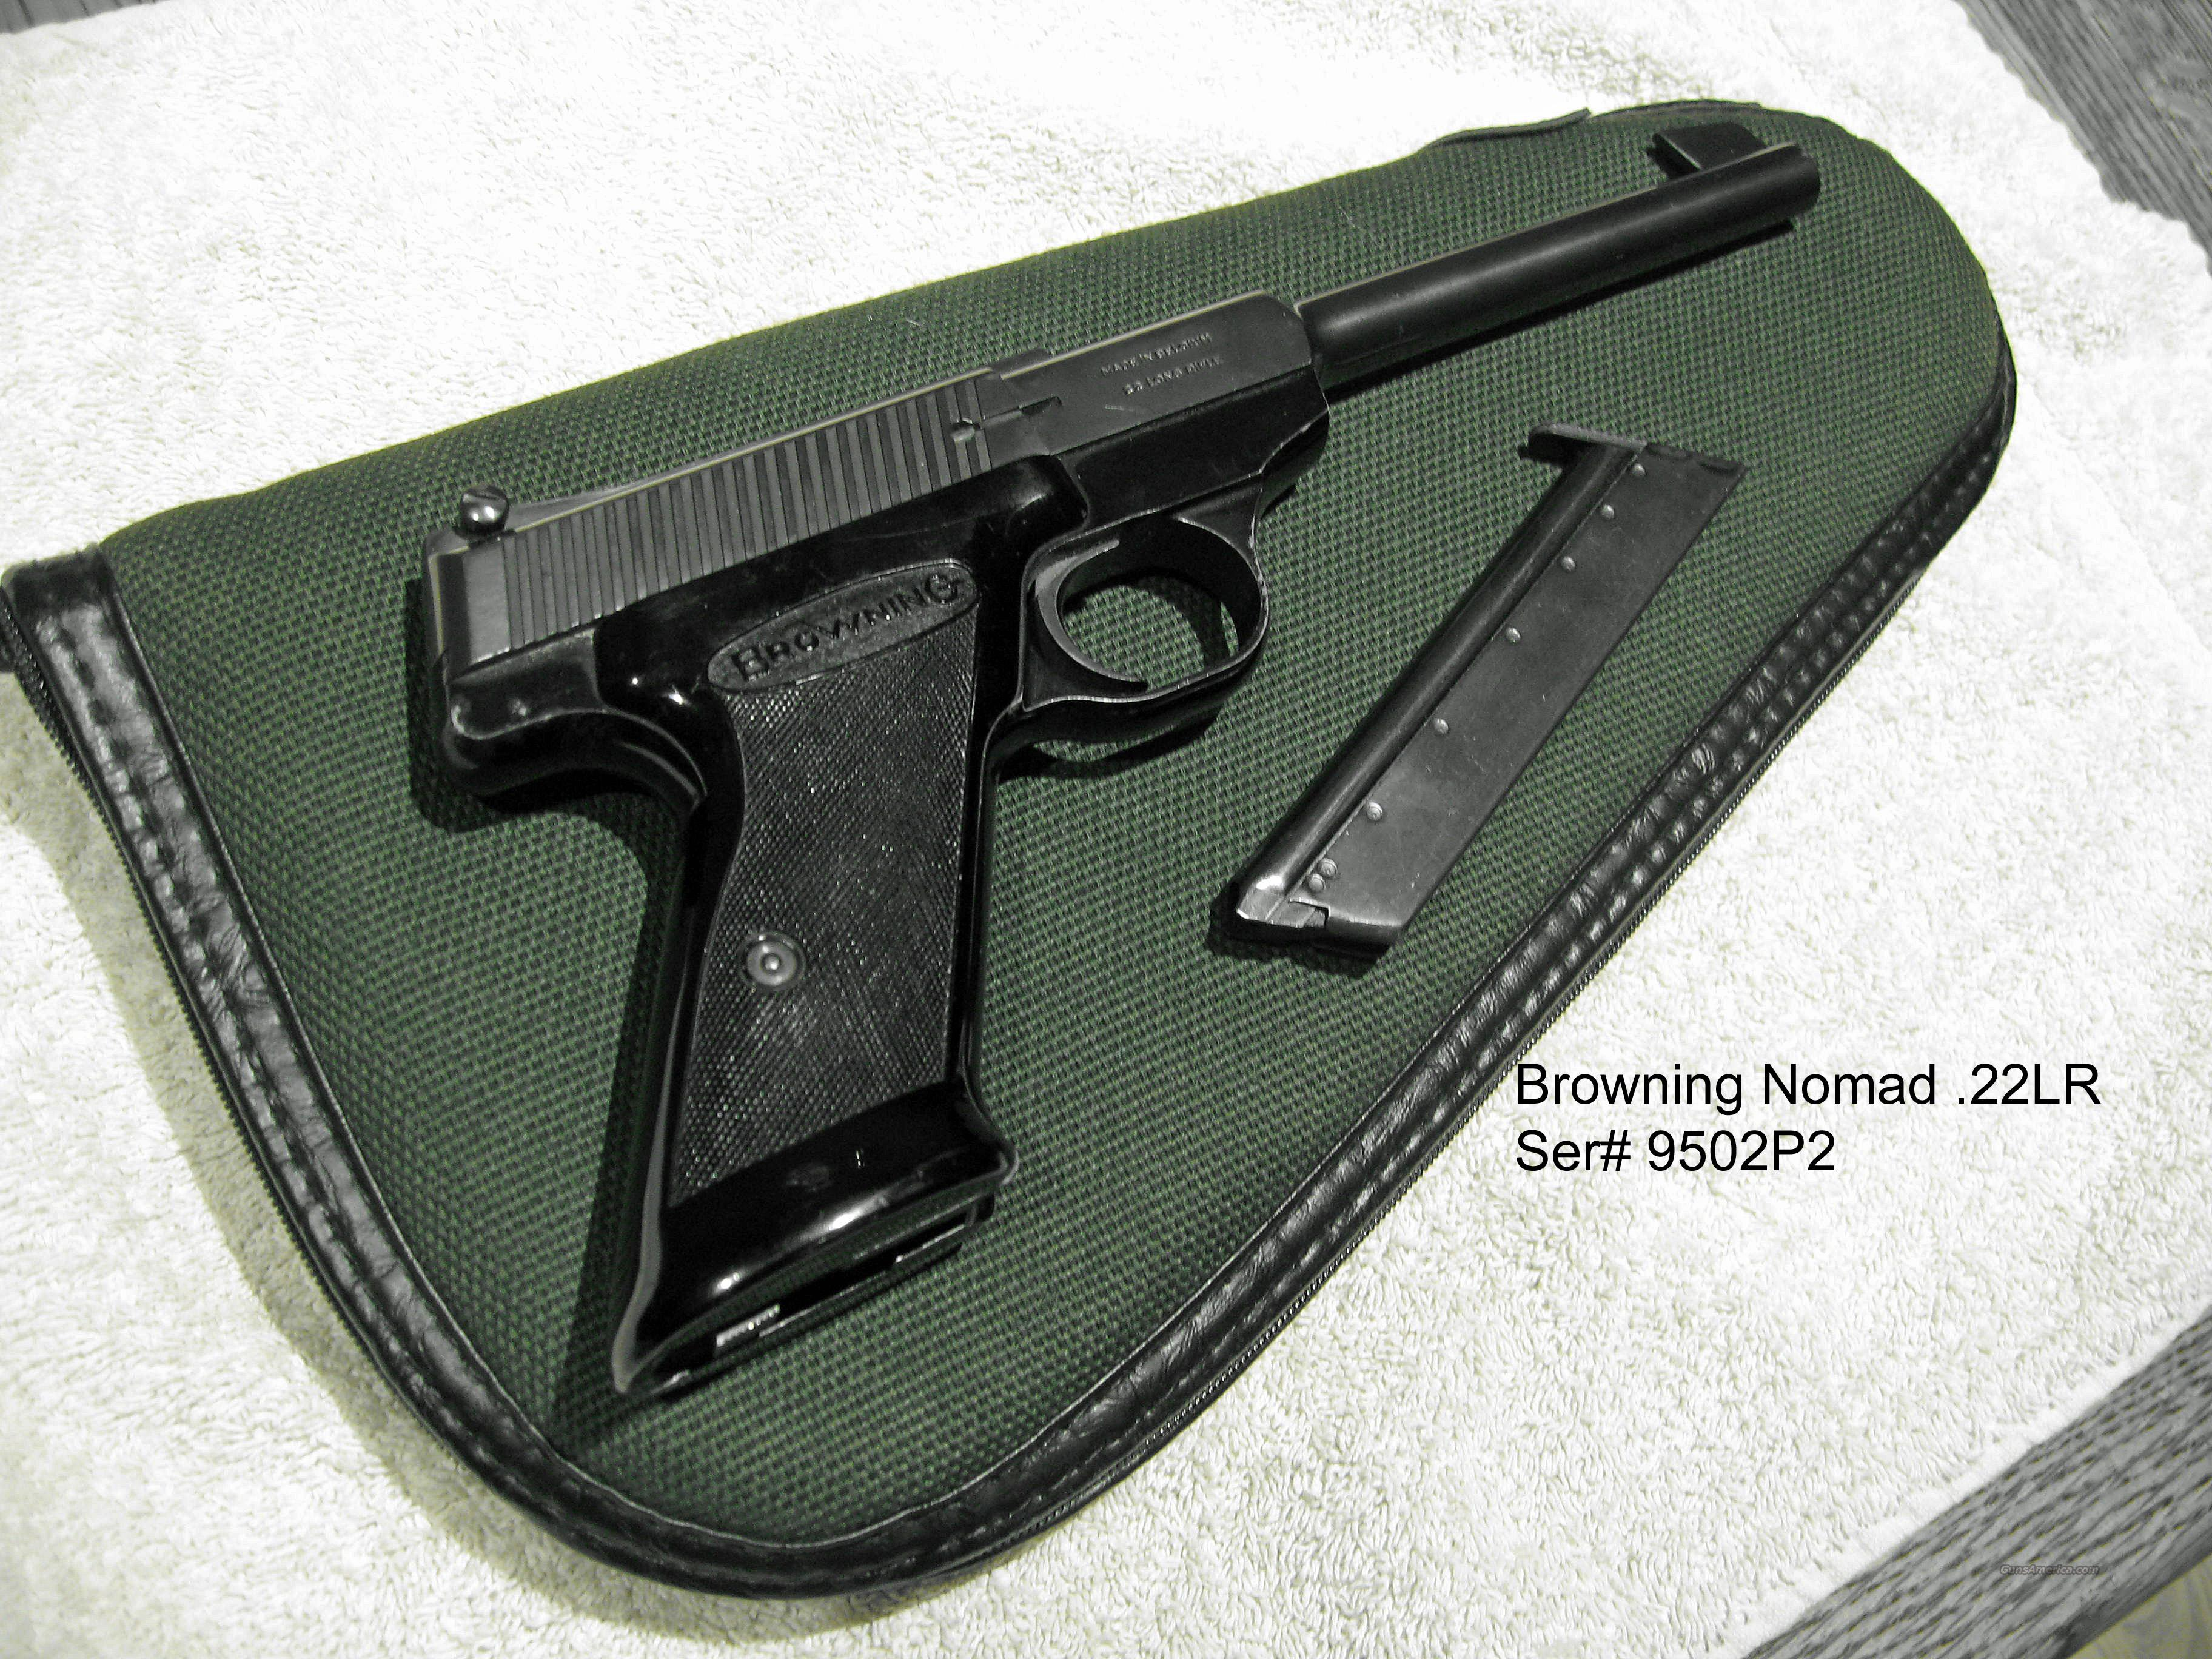 Browning Nomad .22LR Pistol  Guns > Pistols > Browning Pistols > Other Autos